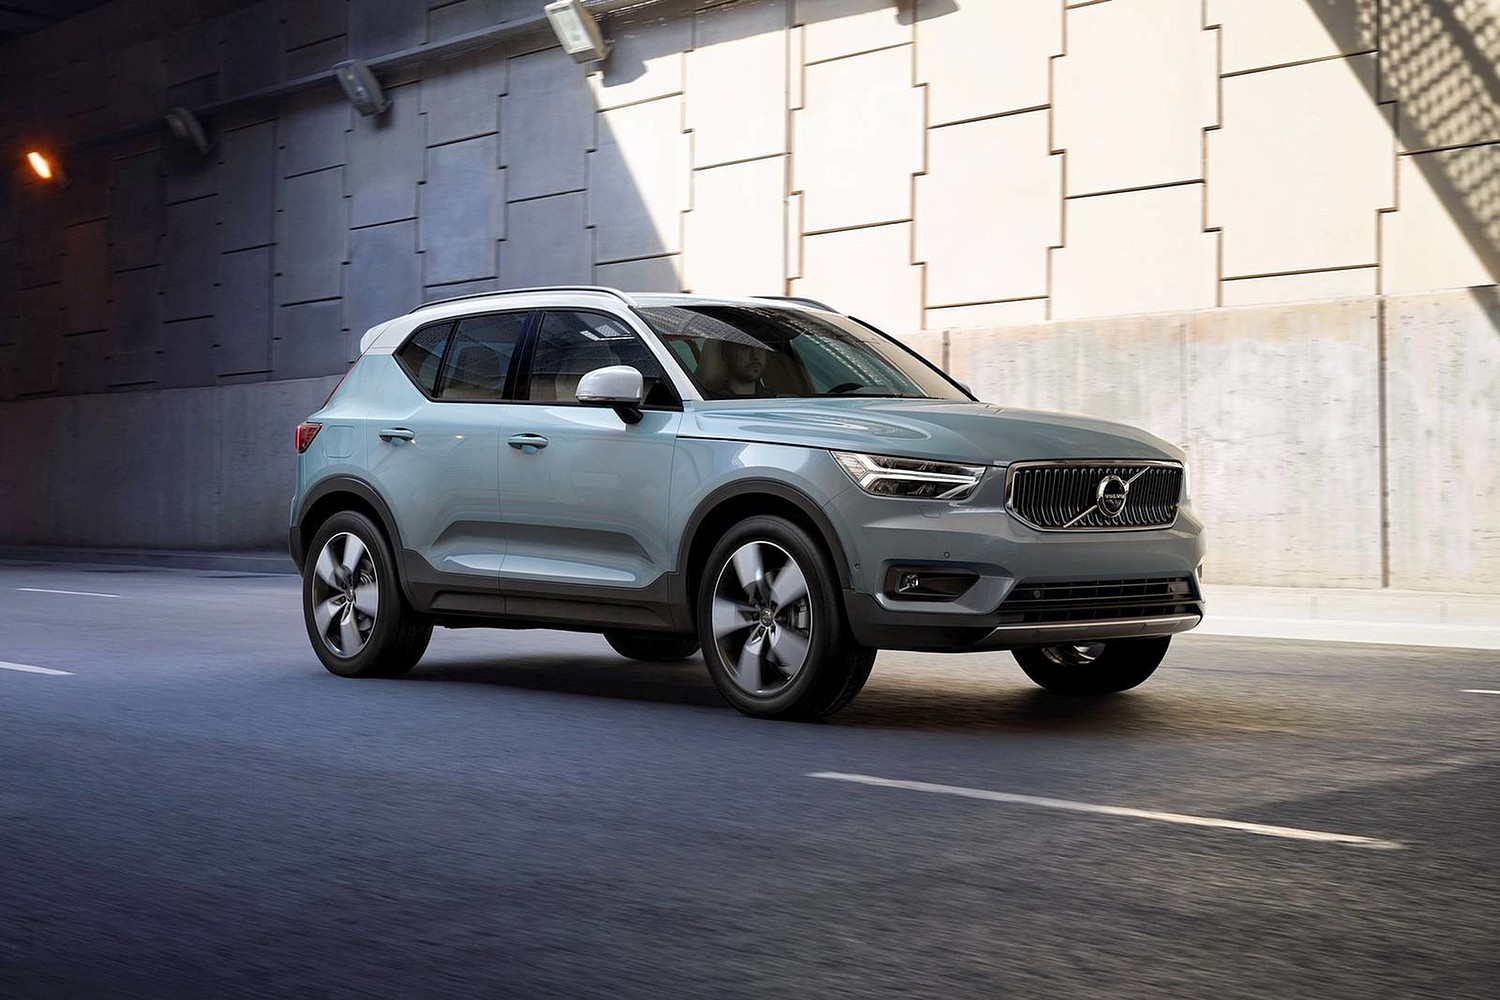 2019 Volvo XC40 T5 Momentum 4dr SUV Exterior Shown